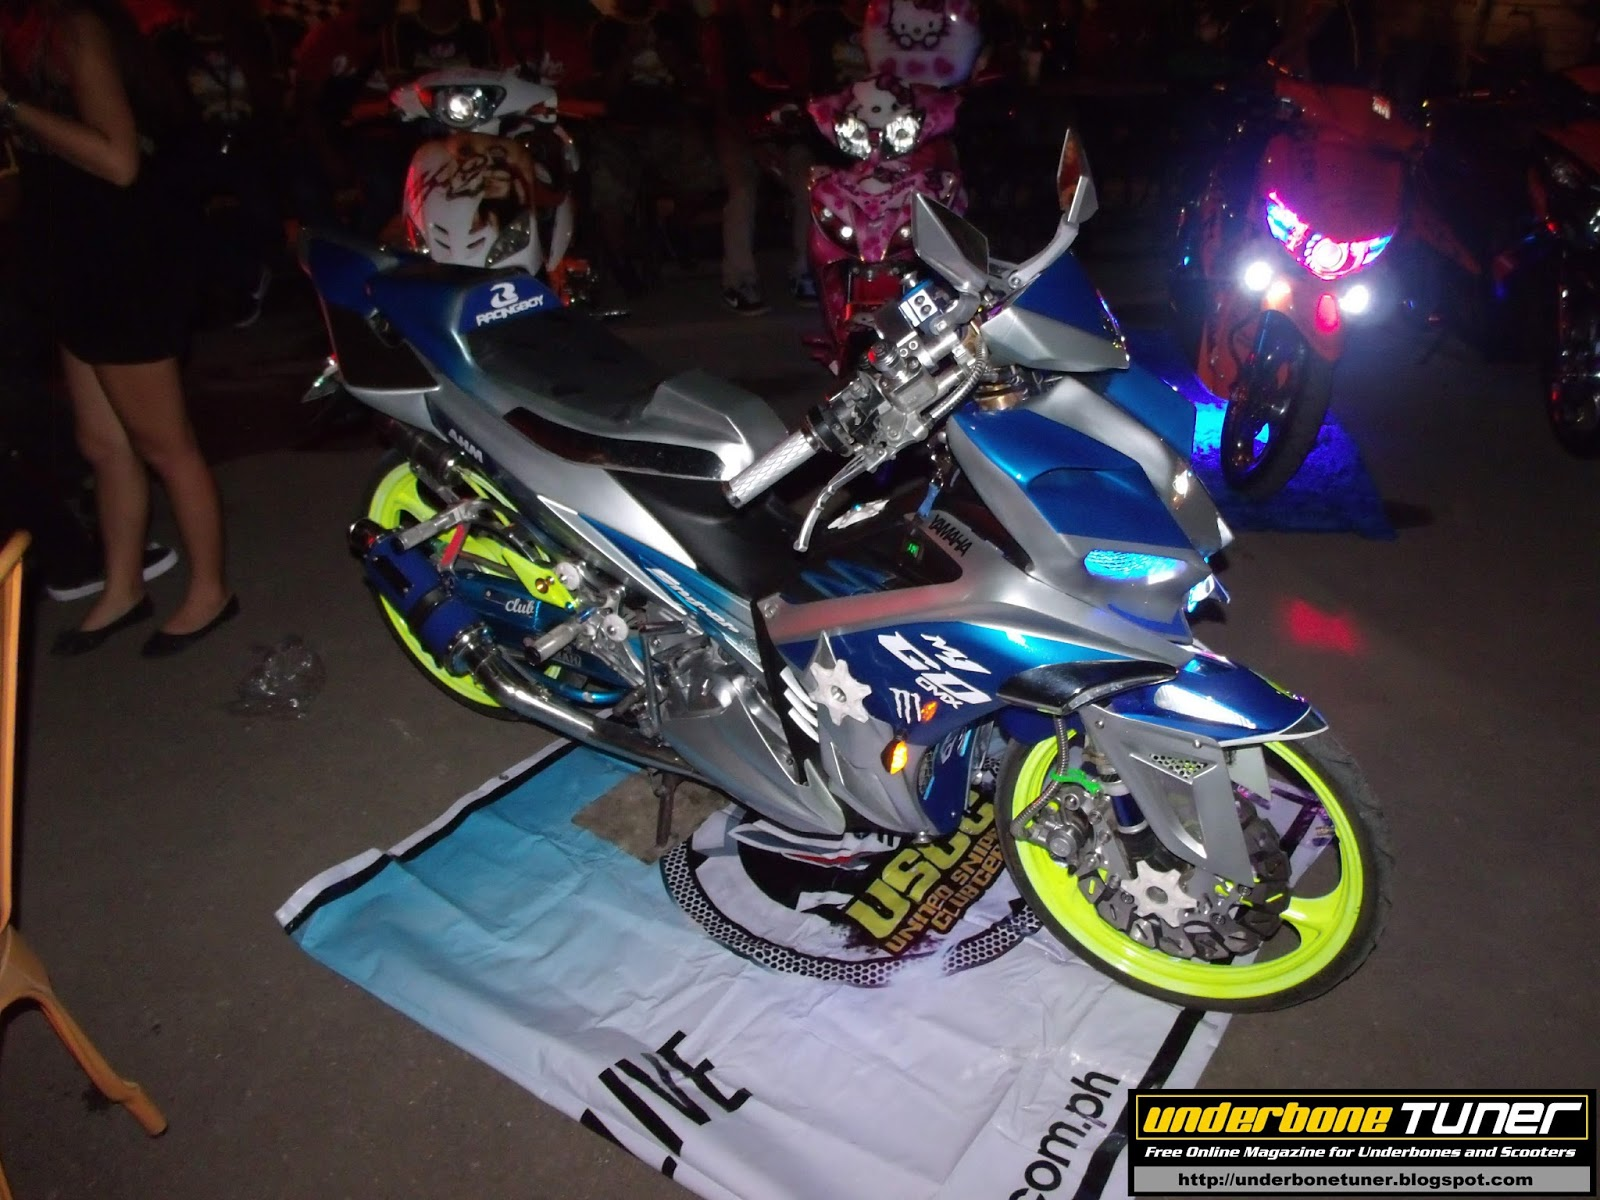 underbone tuner: Yamaha Club Grand Eyeball Cebu - Gallery 2